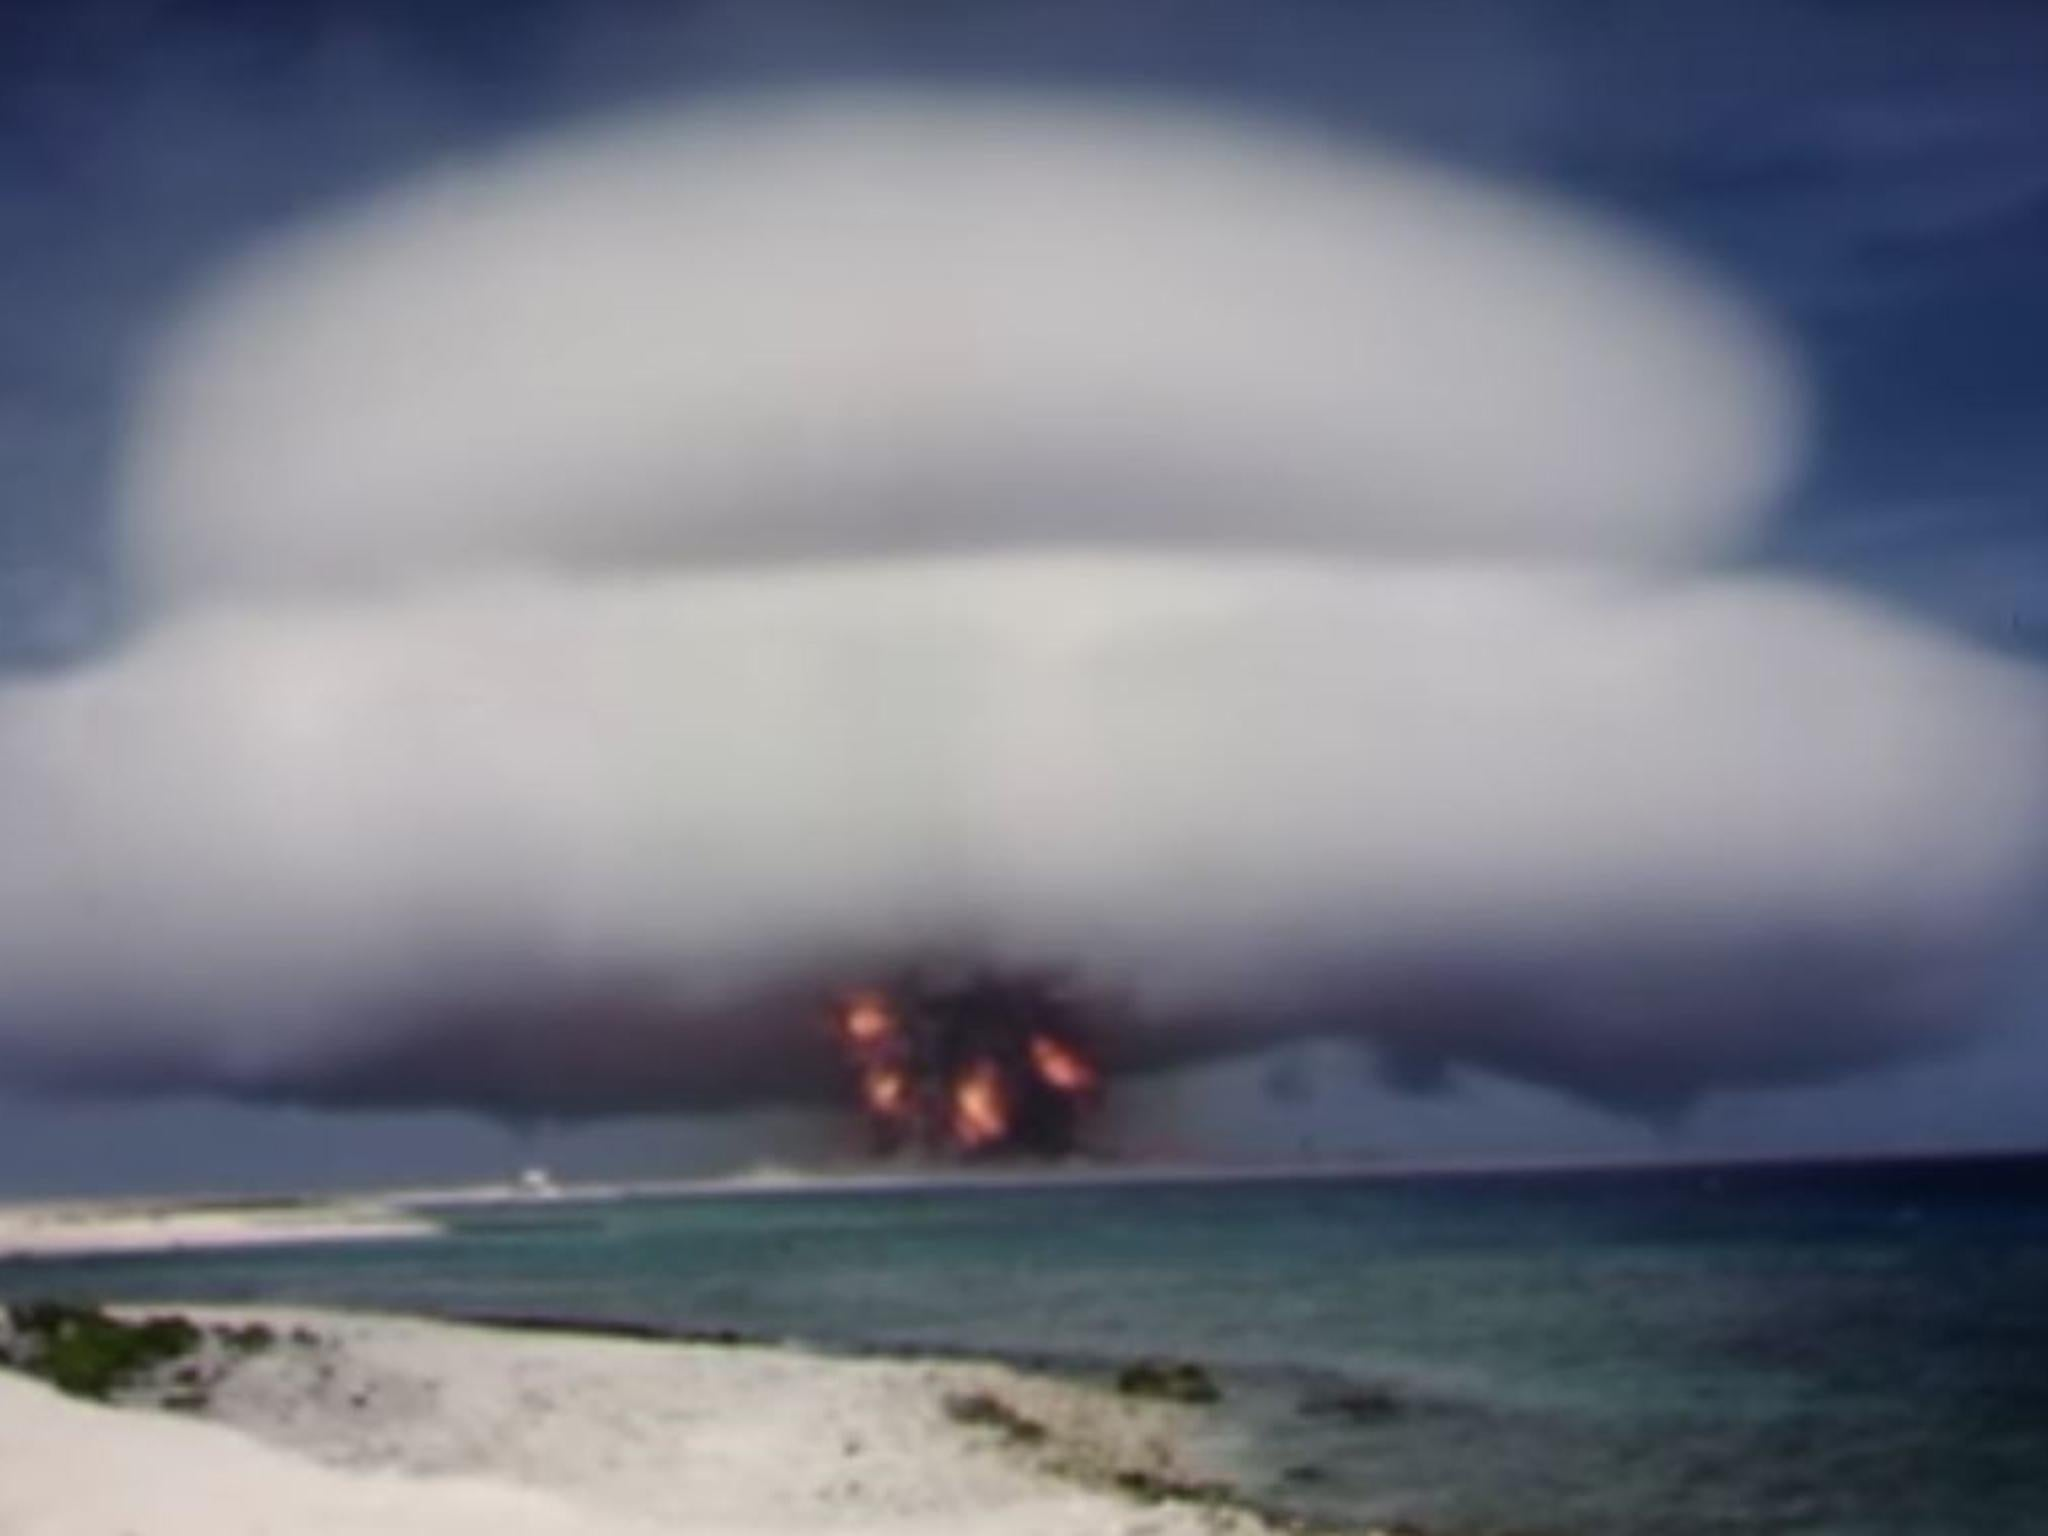 List of nuclear test sites